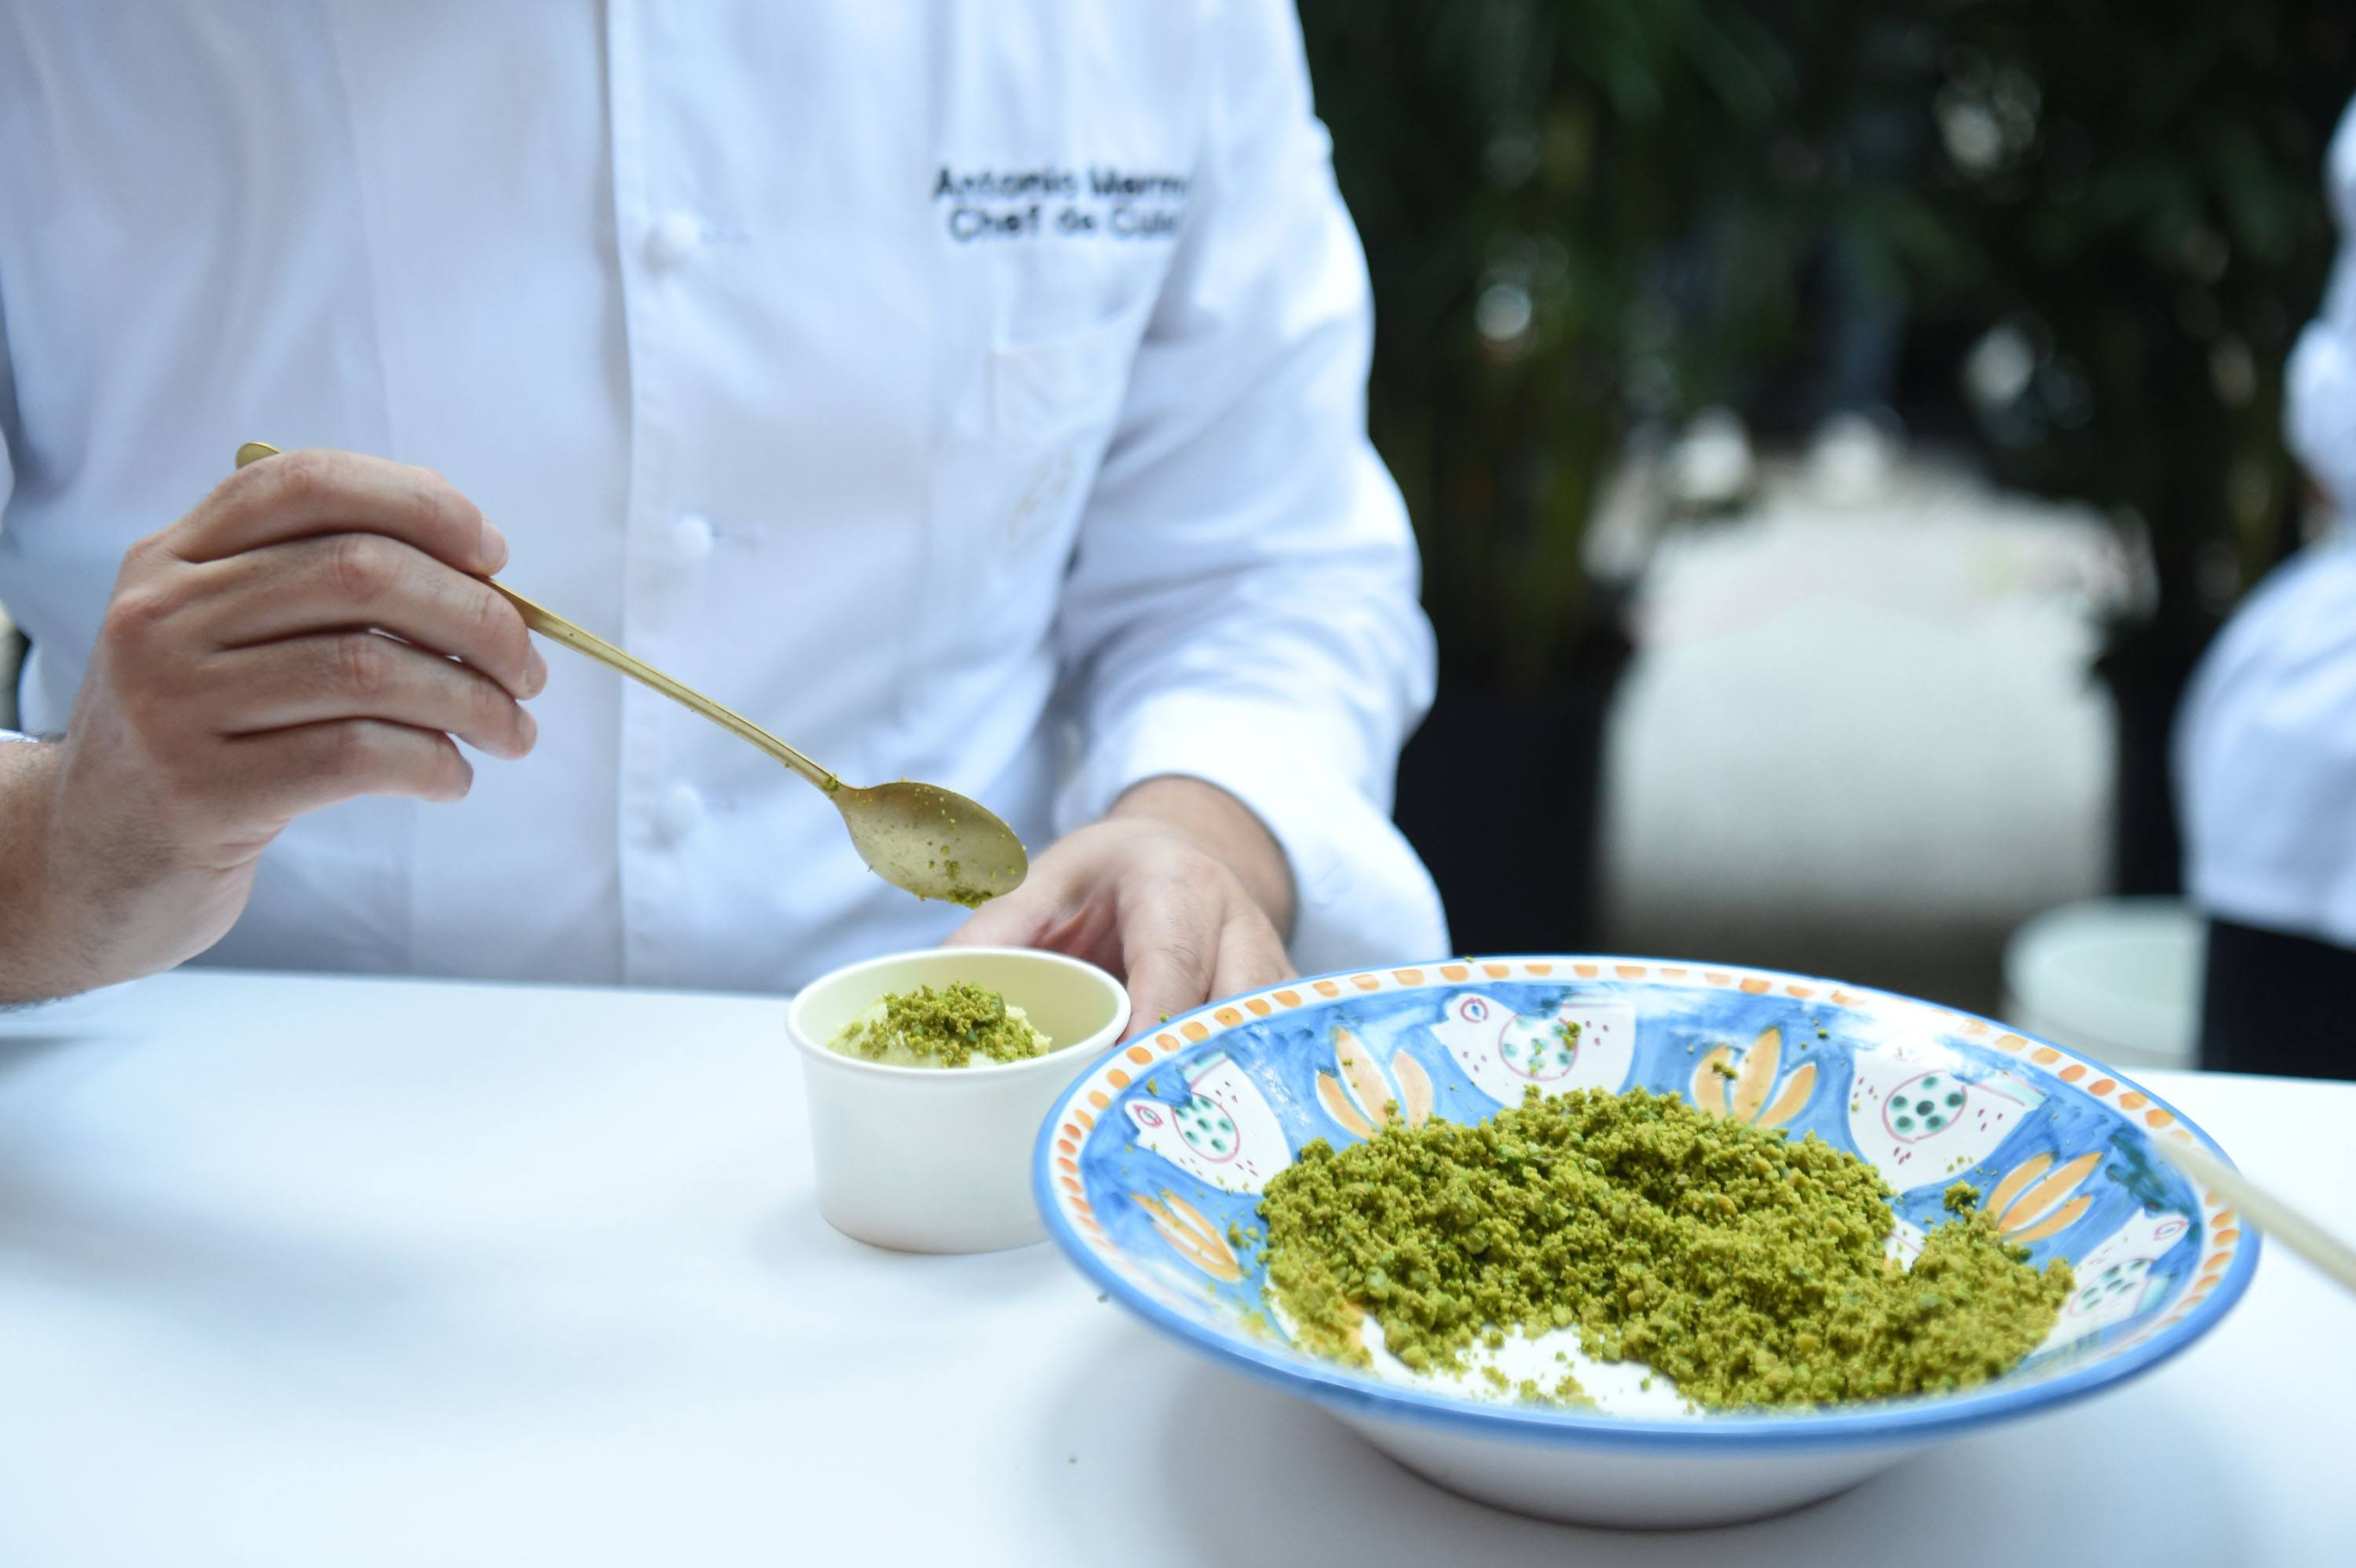 Le Sirenuse Miami featured their signature Pistachio Gelato